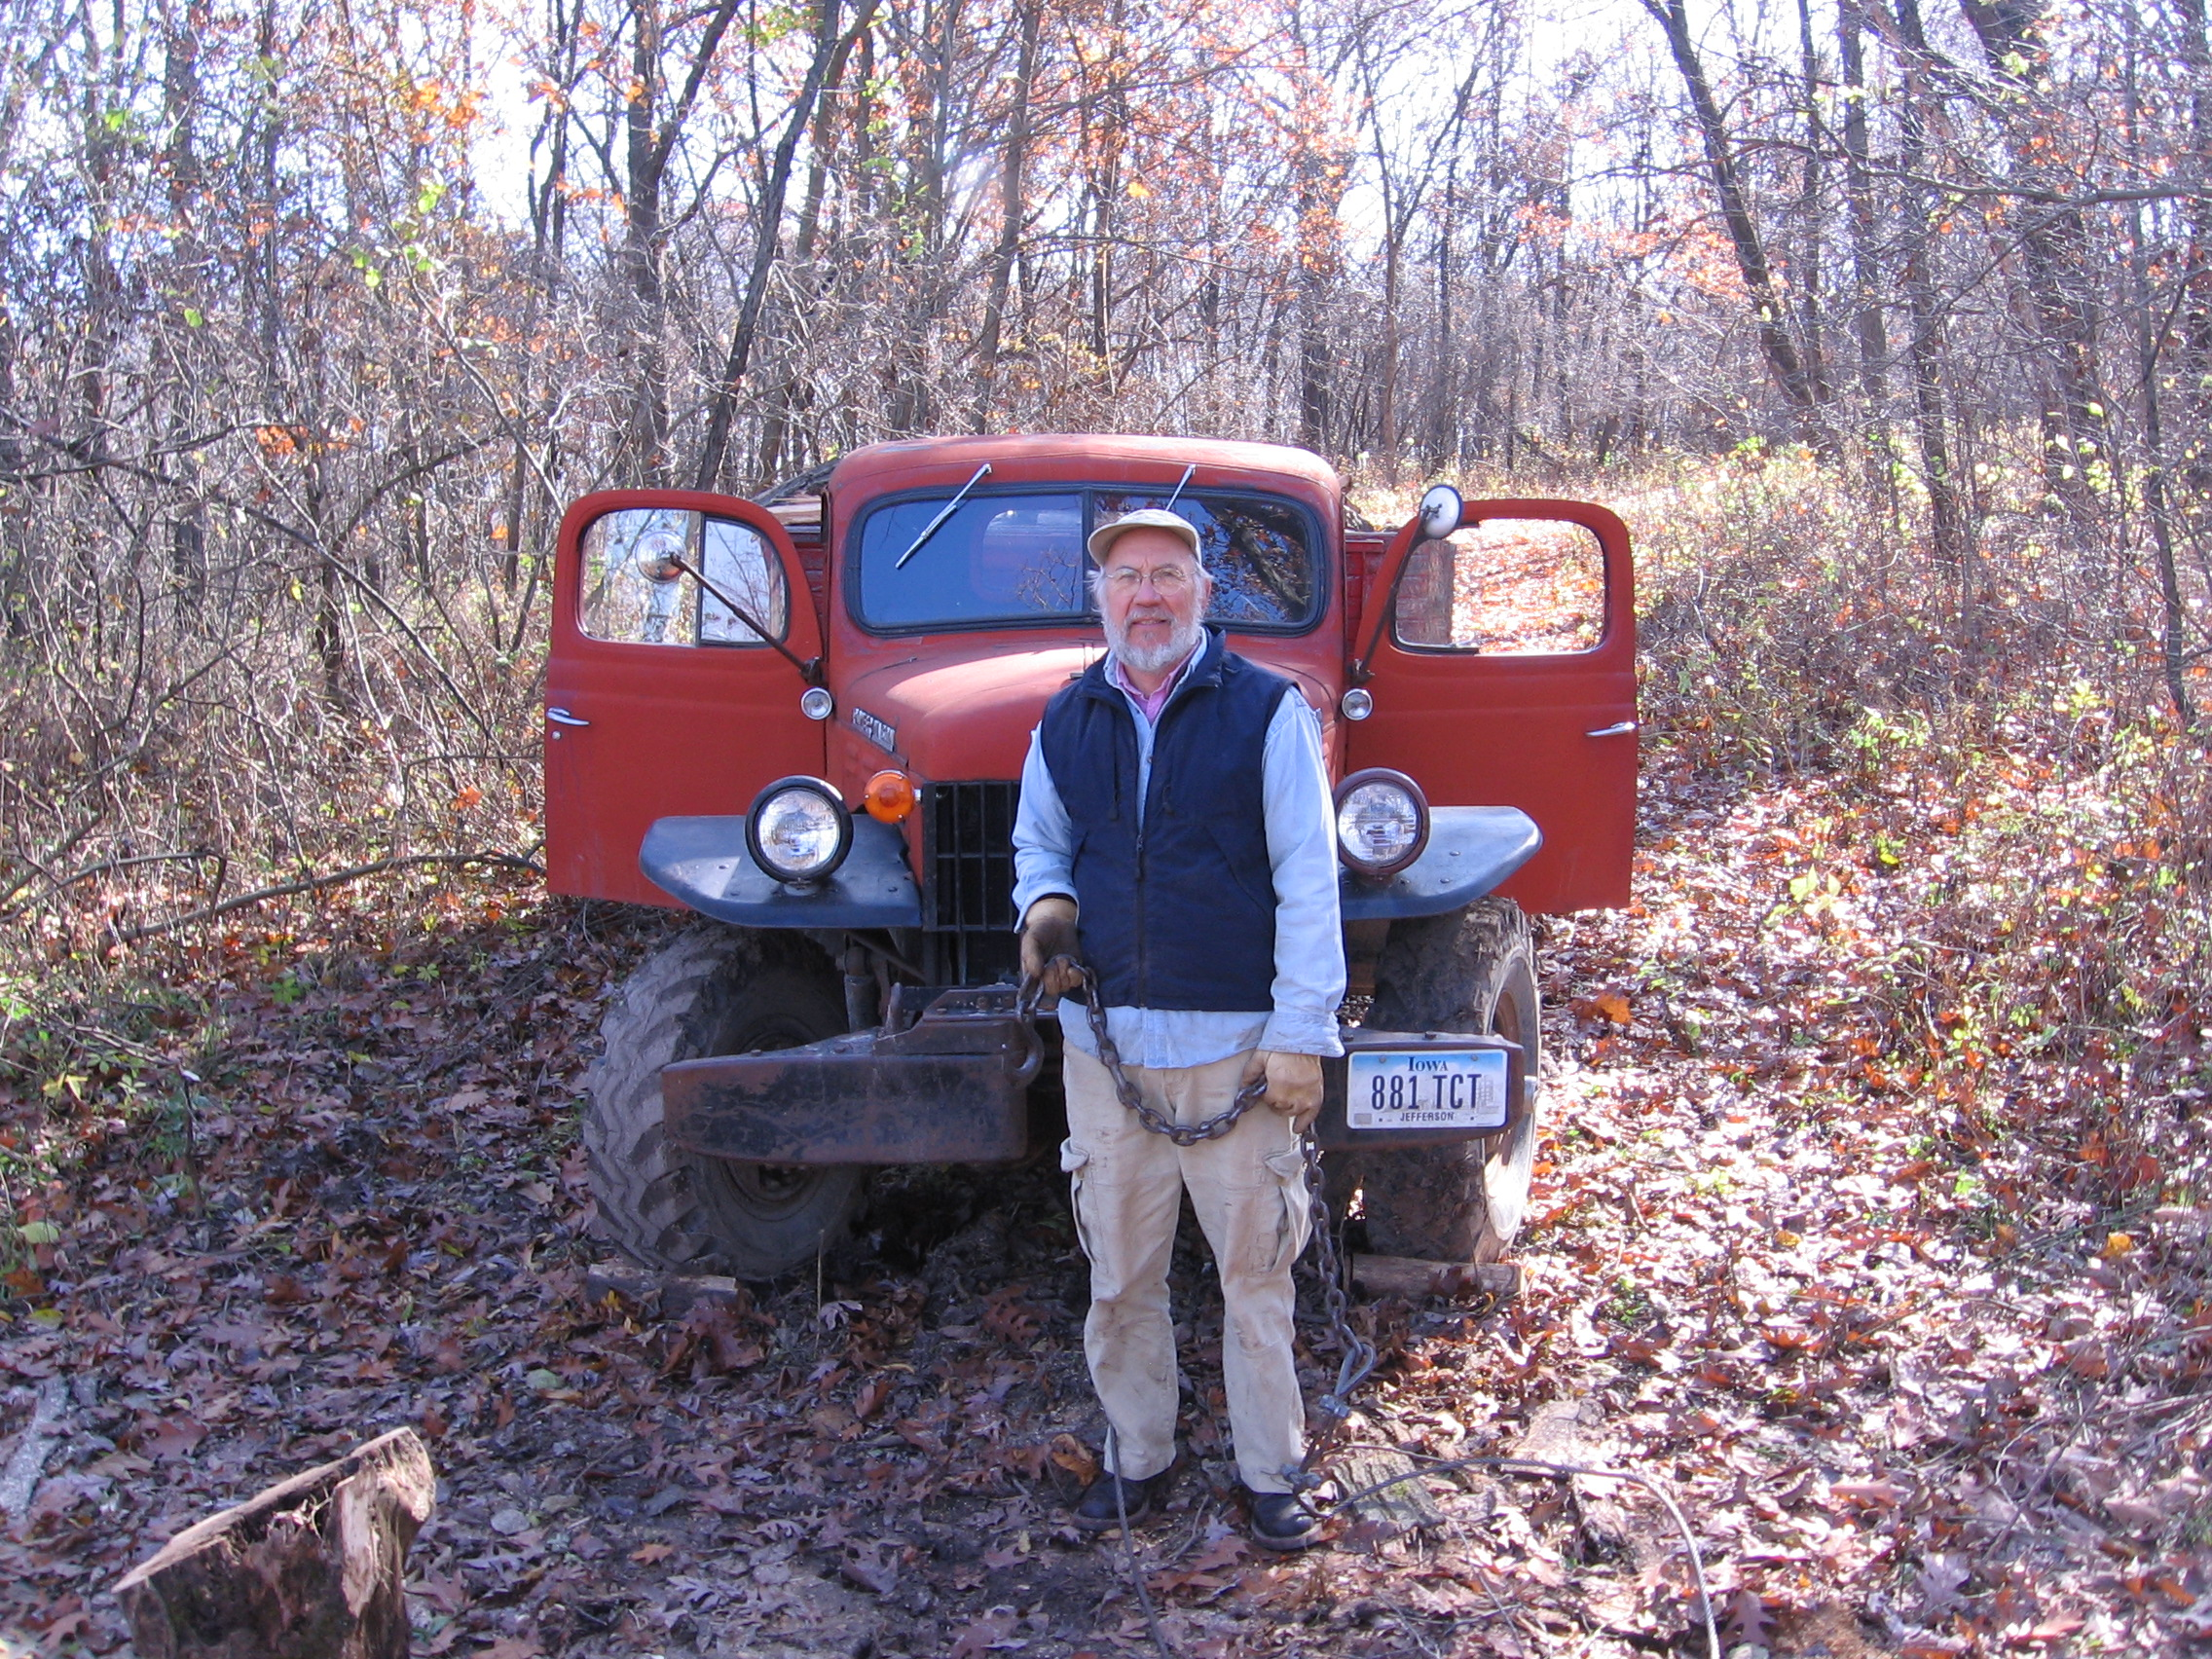 Papa with Truck